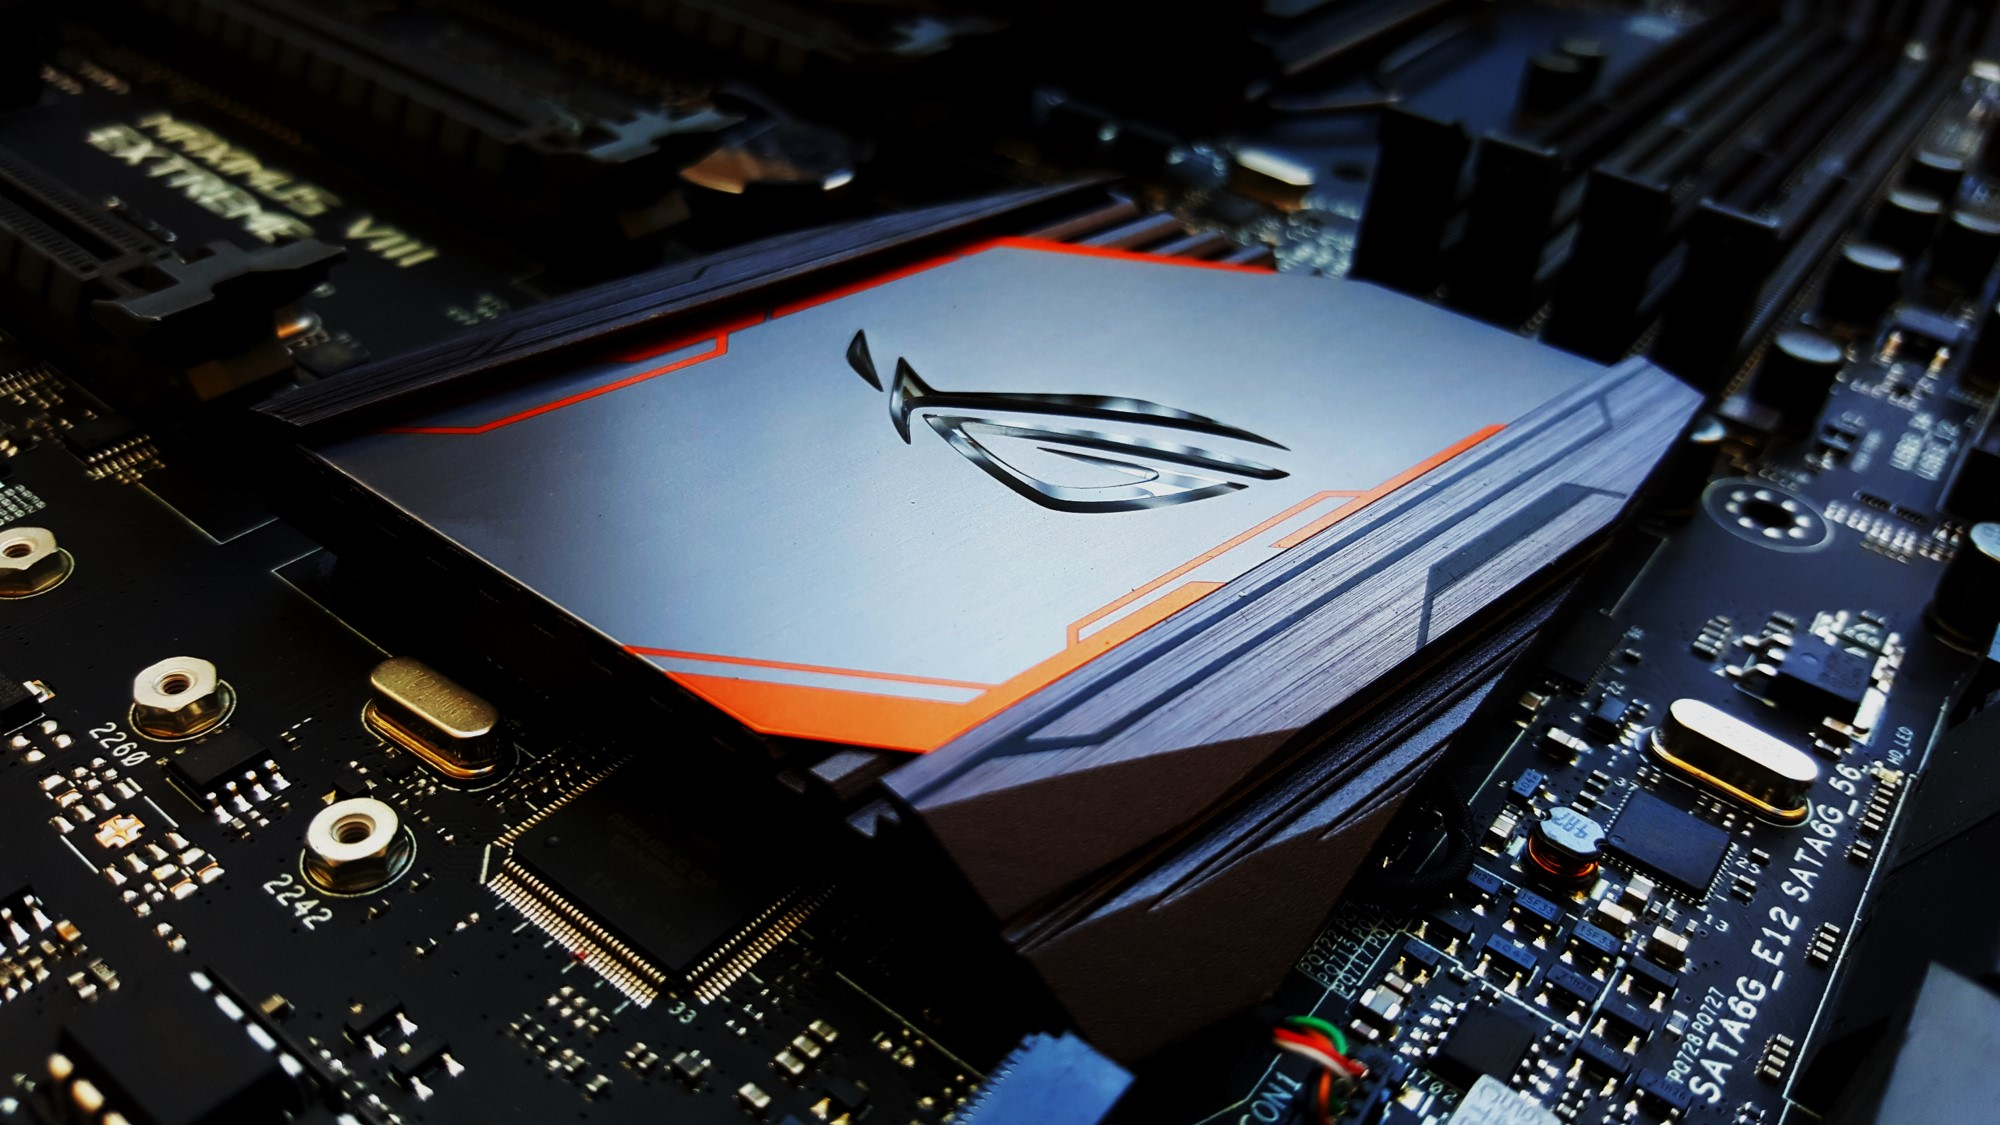 15-Asus Z170 Maximus VIII Extreme Assembly